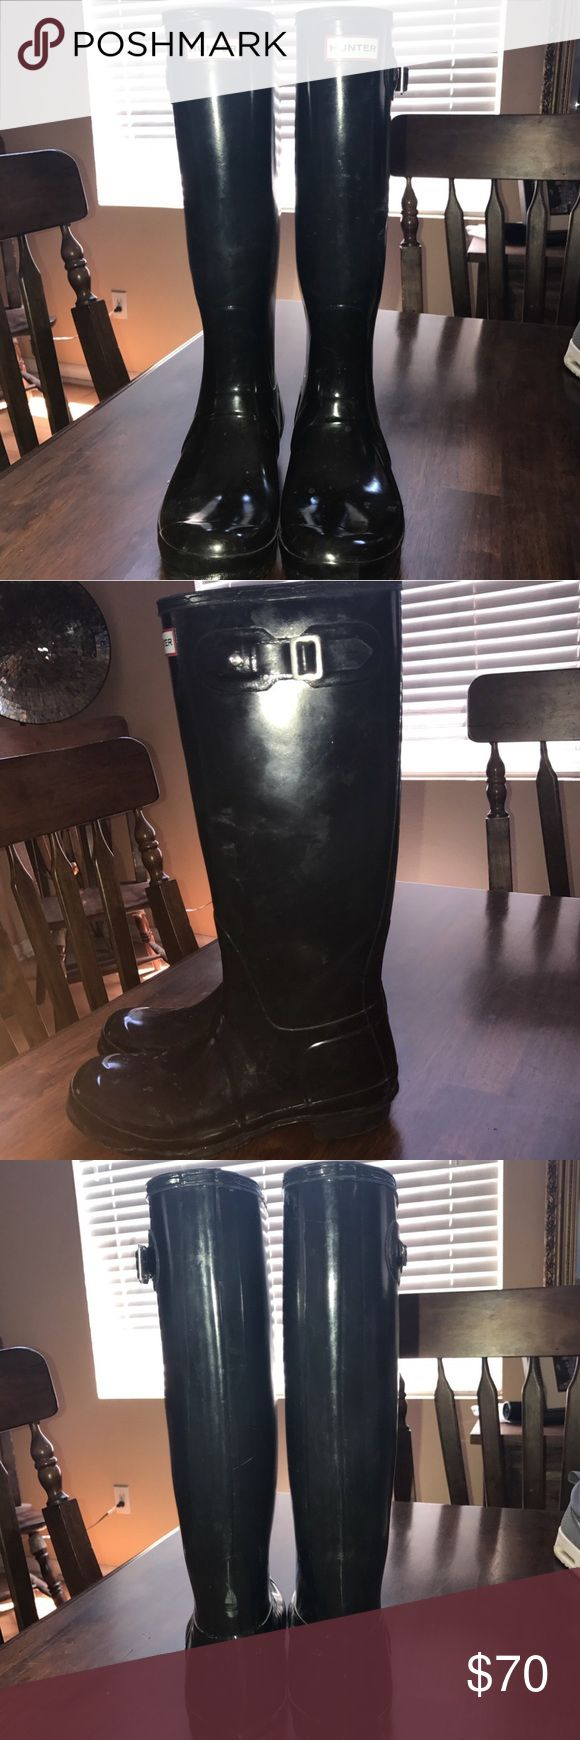 WOMENS HUNTER BOOTS SIZE 10 Original tall glossy hunter boots! SZ uk8 us10 eu42! Great condition, only thing is a missing buckle on the right boot! Originally 150!!! Hunter Boots Shoes Winter & Rain Boots